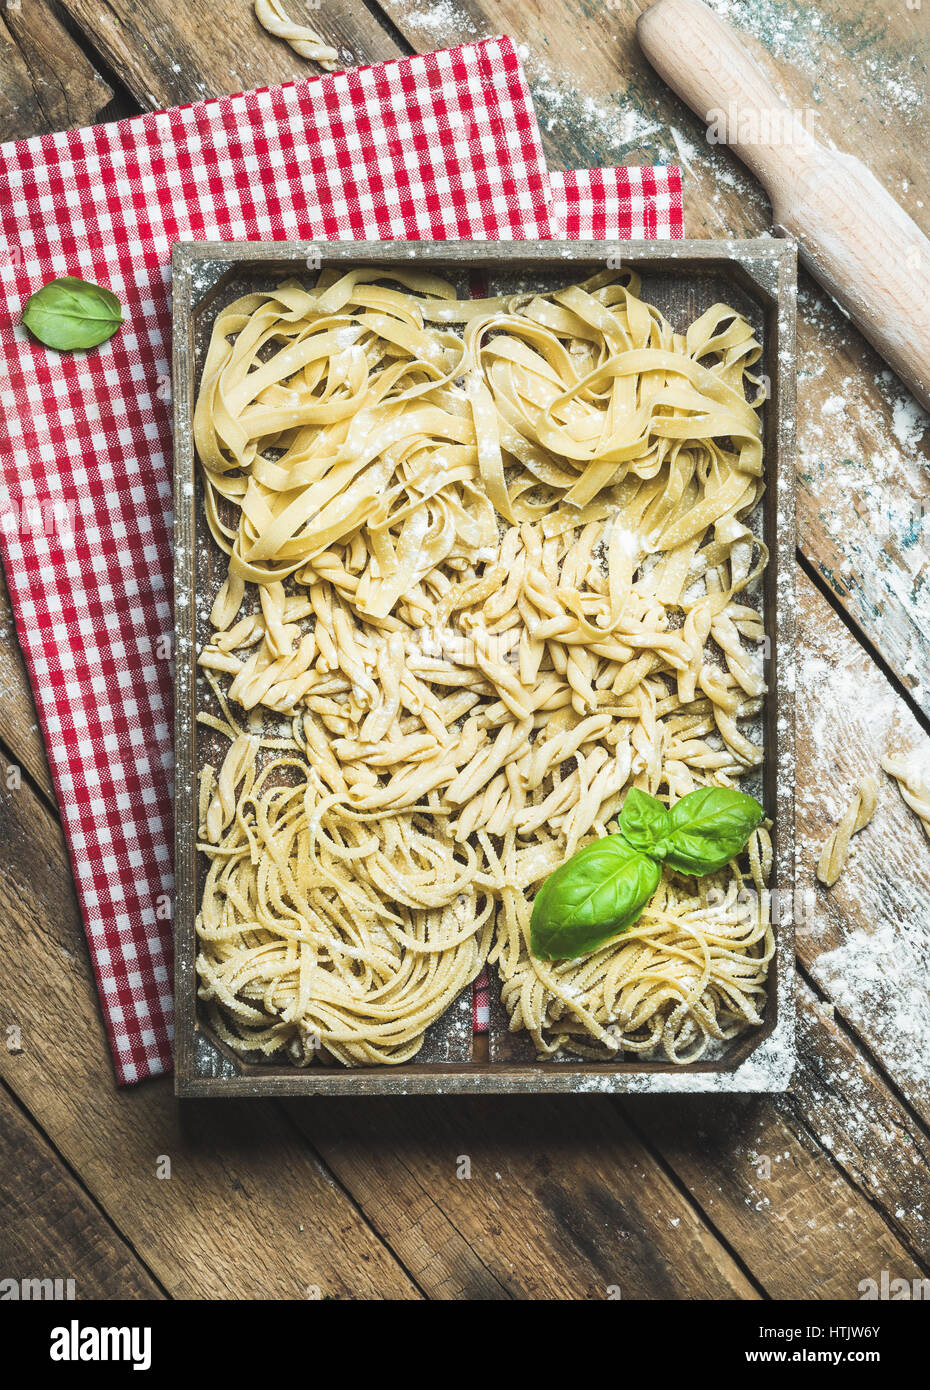 Uncooked Italian pasta in wooden tray over rustic background - Stock Image